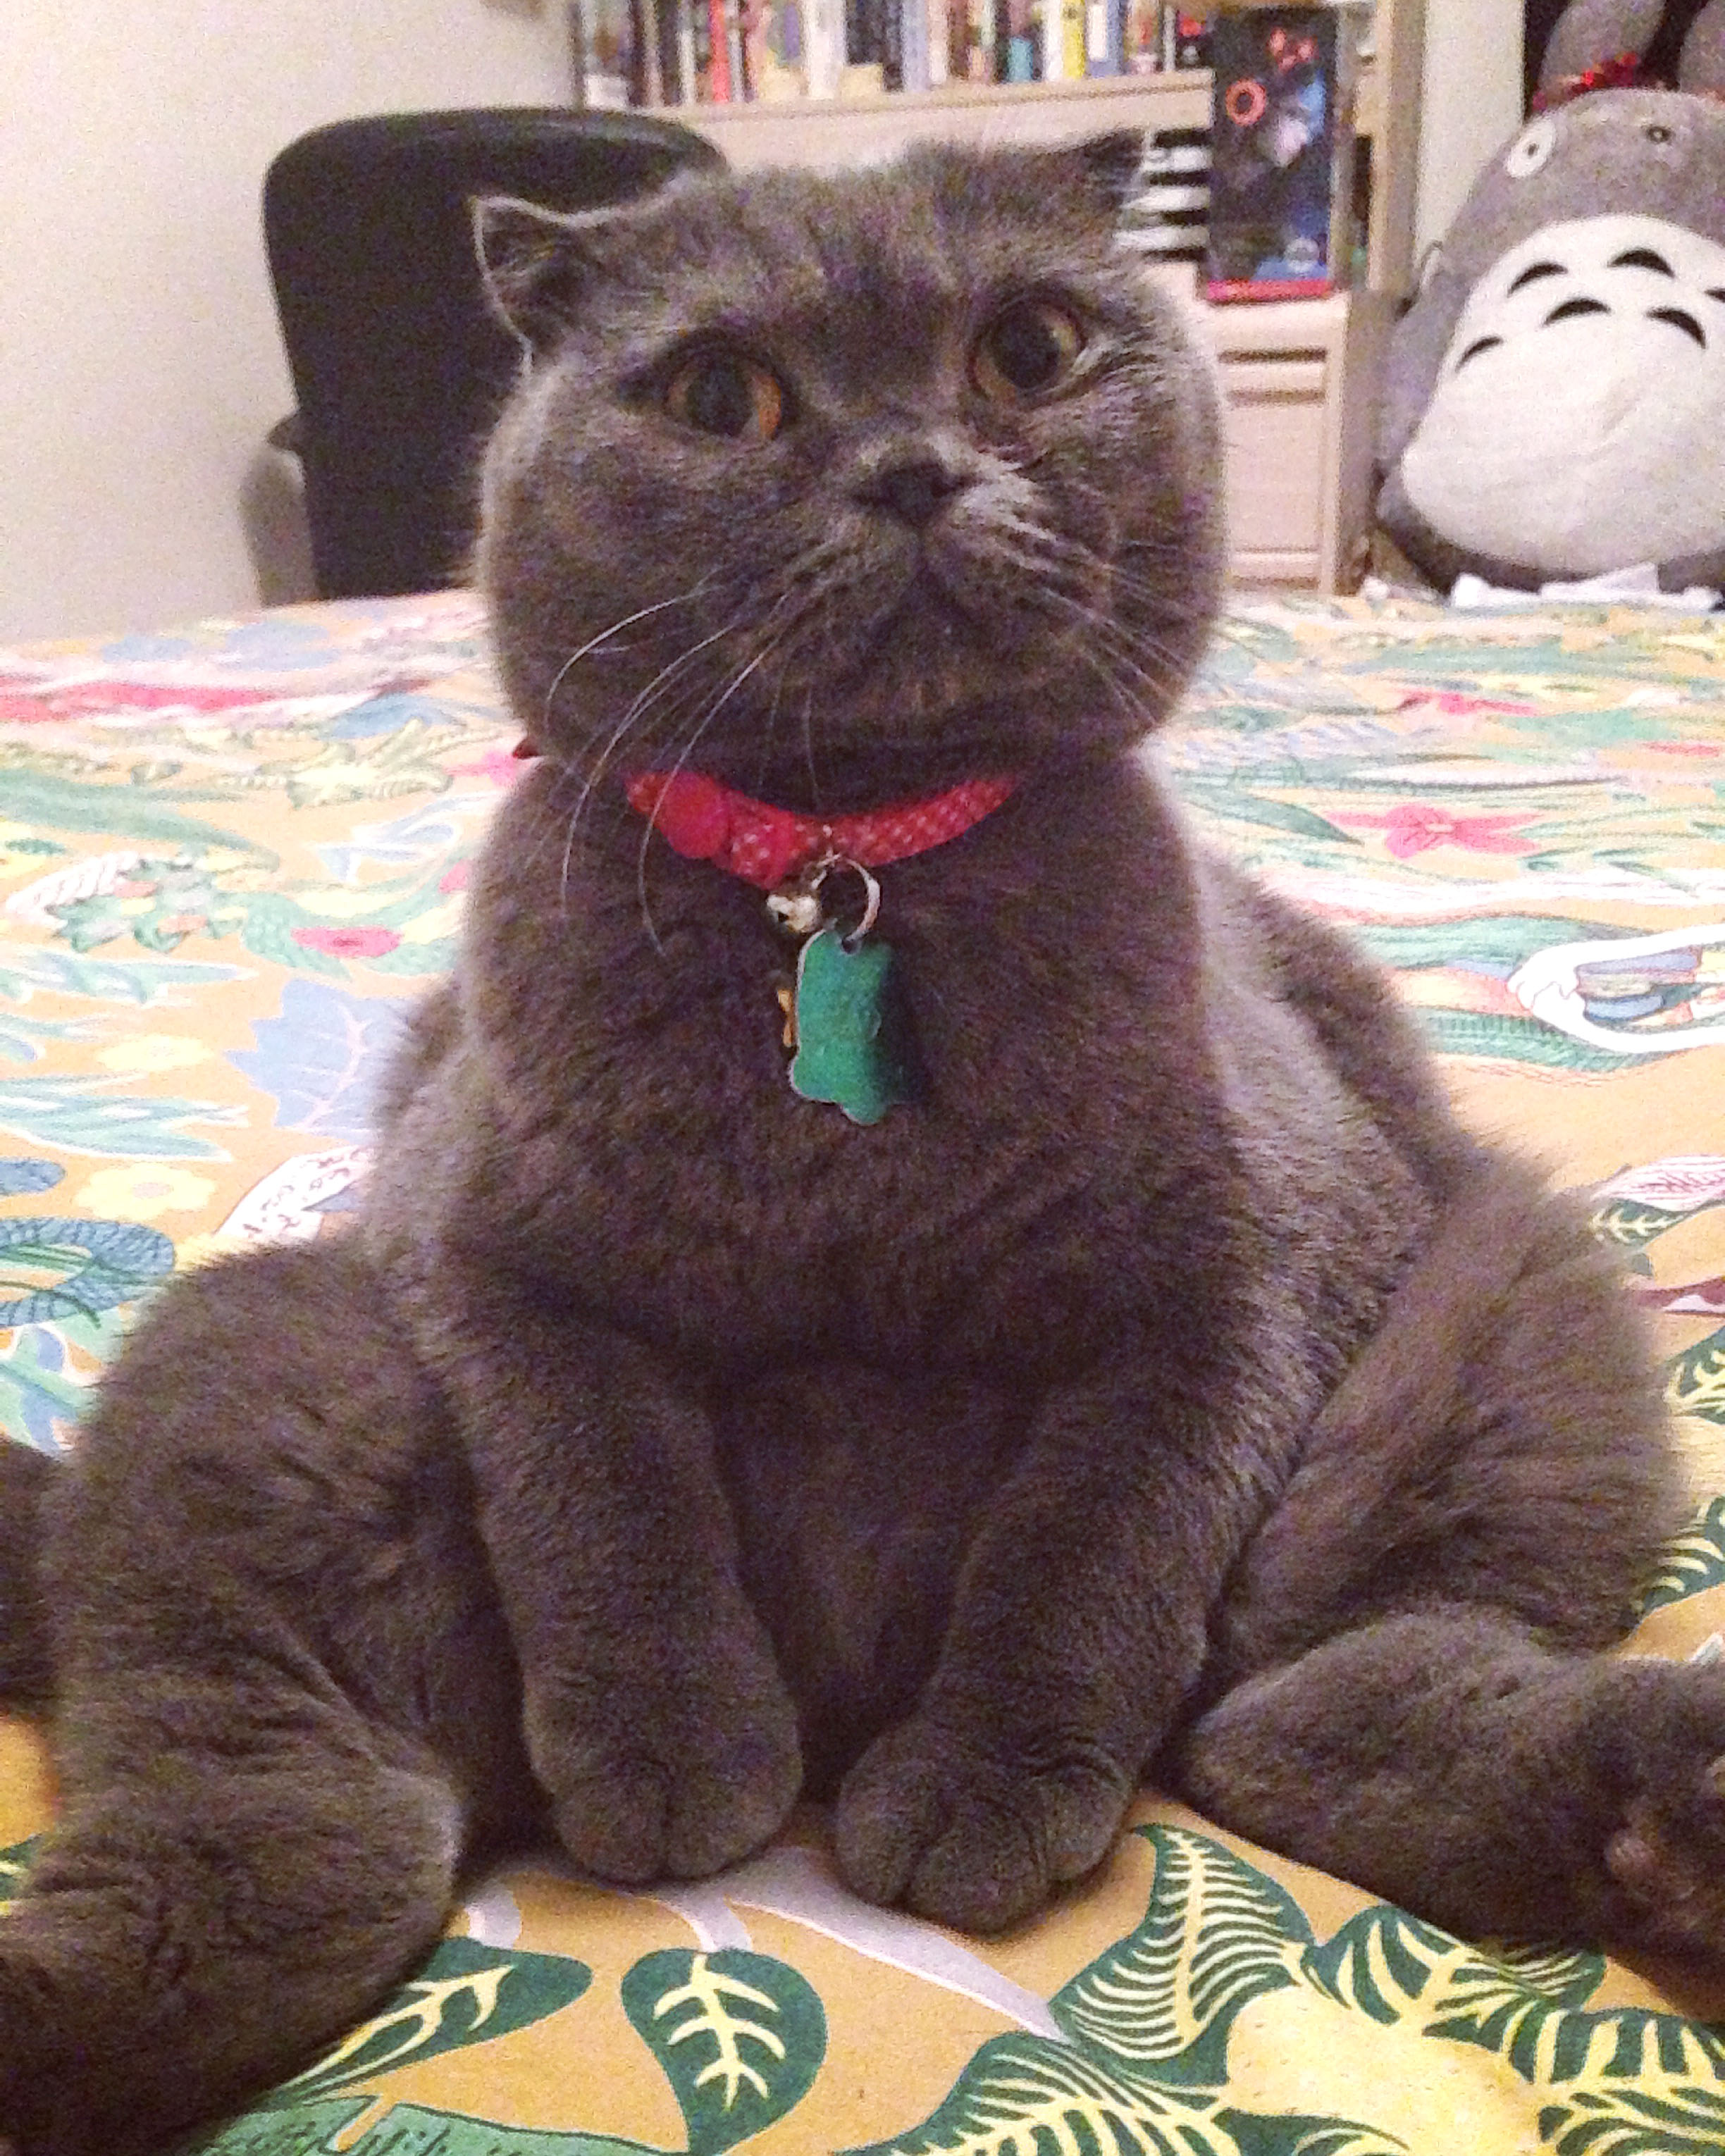 This Scottish Fold cat likes to sit like a human